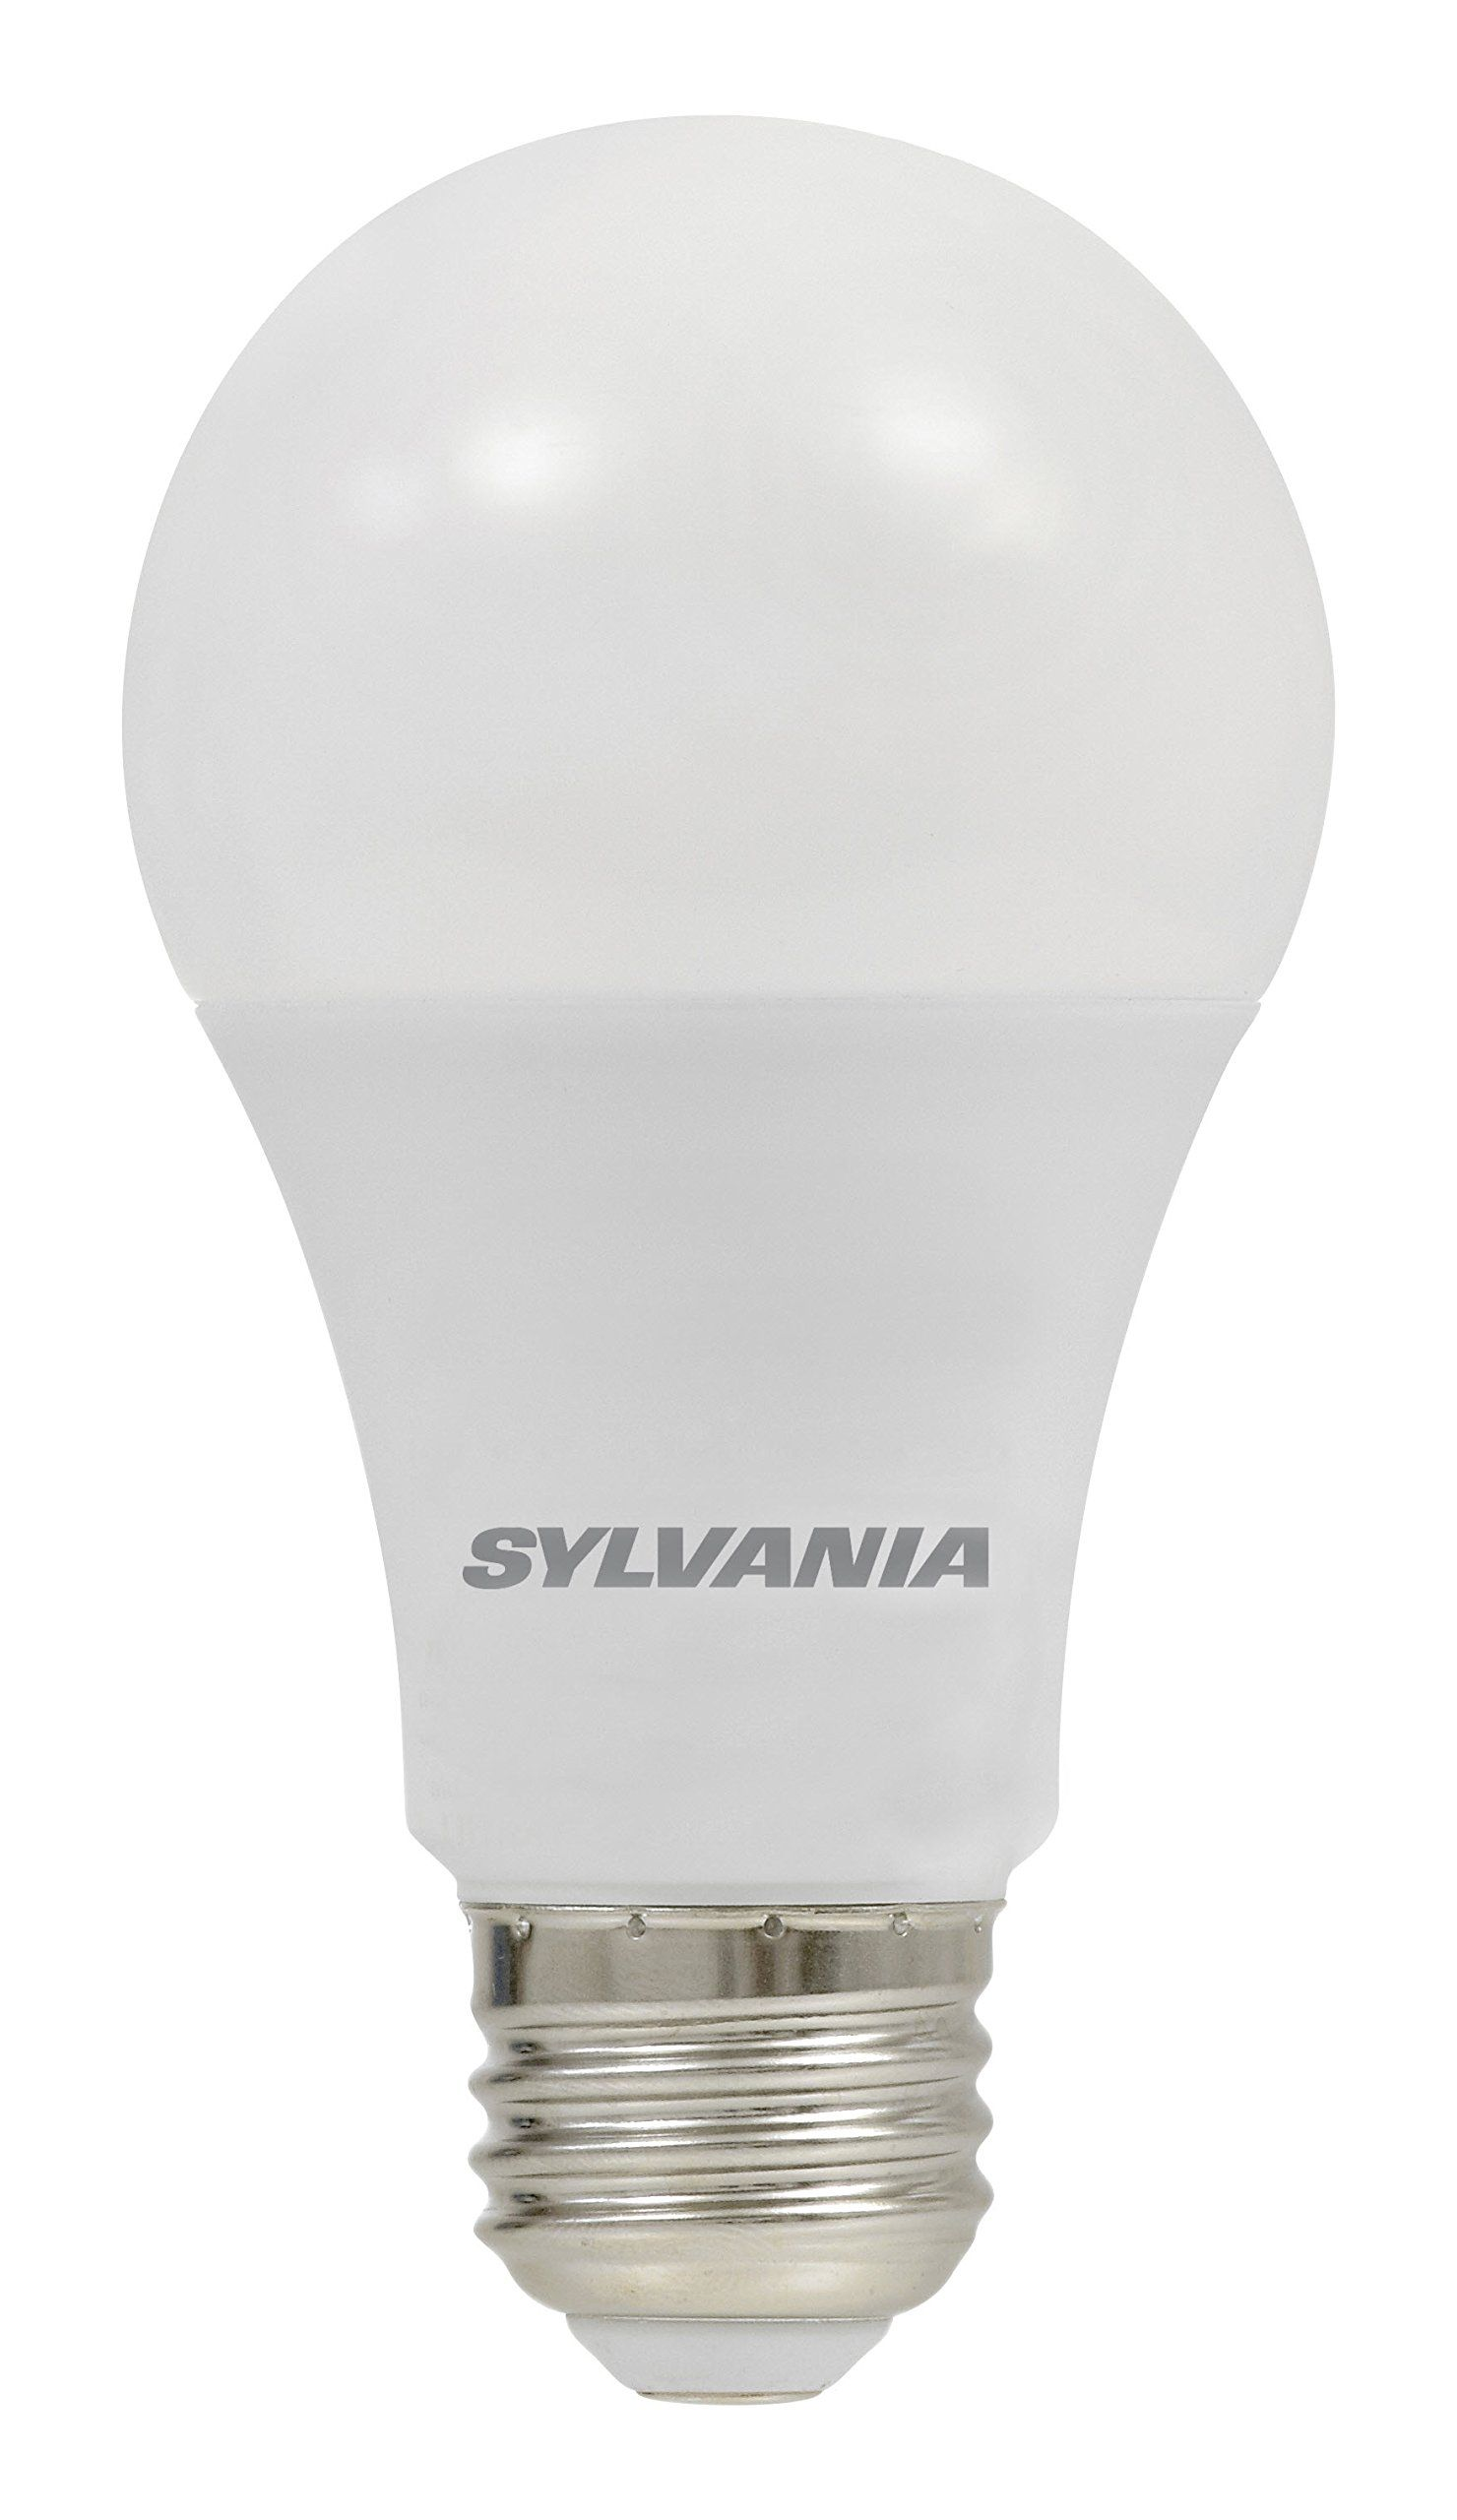 Sylvania Home Lighting 73187 100w Equivalent Led Bulb A21 Lamp Efficient 16w Soft White 2700k Learn More In 2020 Light Bulb Dimmable Led Lights Light Bulb Candle